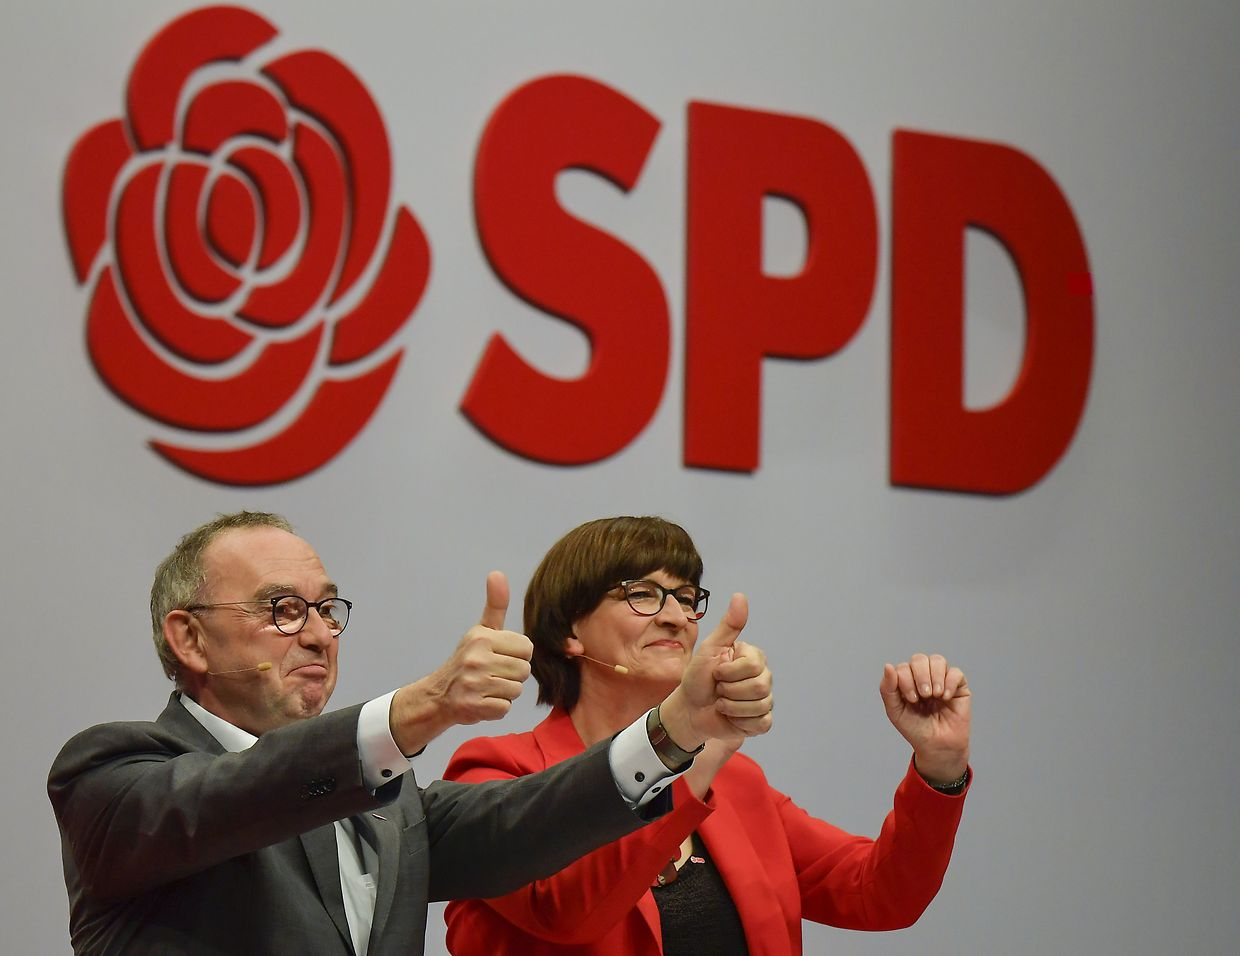 Designated Germany's social democratic SPD party co-leaders Norbert Walter-Borjans and Saskia Esken gesture in front of their party logo during the party congress of Germany's Social Democrats (SPD) at the fairgrounds in Berlin, on December 6, 2019. - Some 600 delegates from the centre-left SPD will be gathering until December 8, 2019 to discuss their next move under a new, more radical leadership. (Photo by Tobias SCHWARZ / AFP)